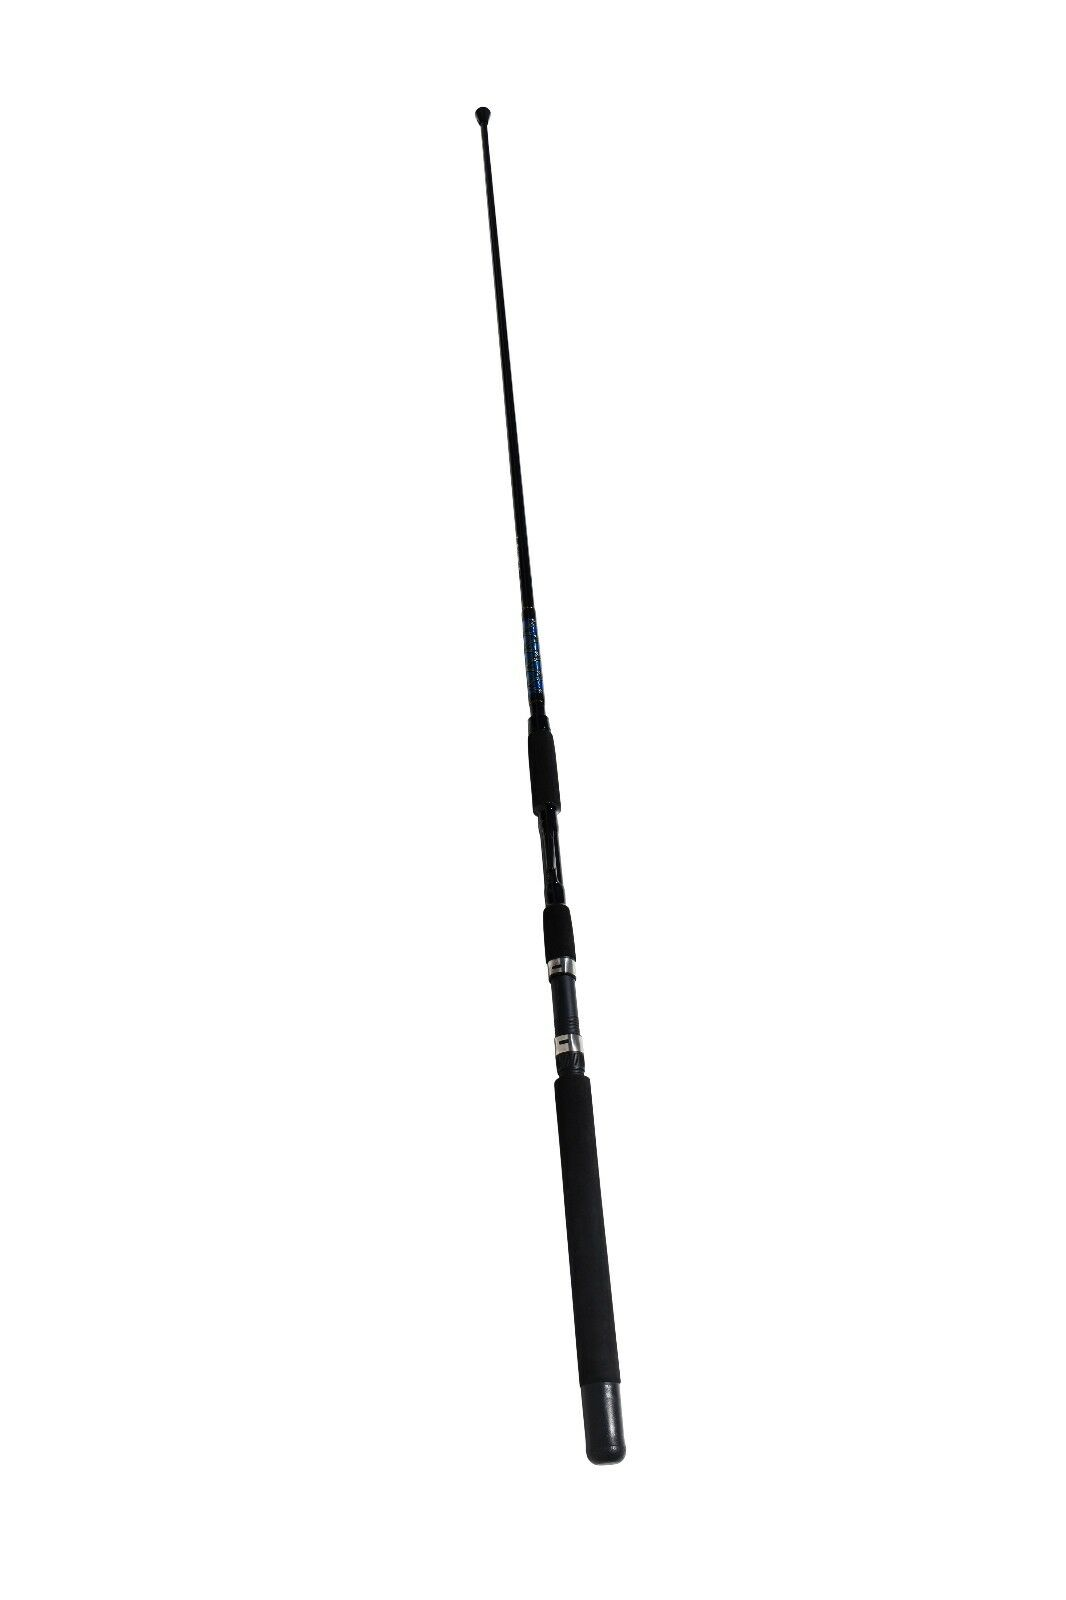 7 ft sabiki bait fishing rod sabiki rig  pole free shipping WAREHOUSE CLEARANCE   wholesale prices